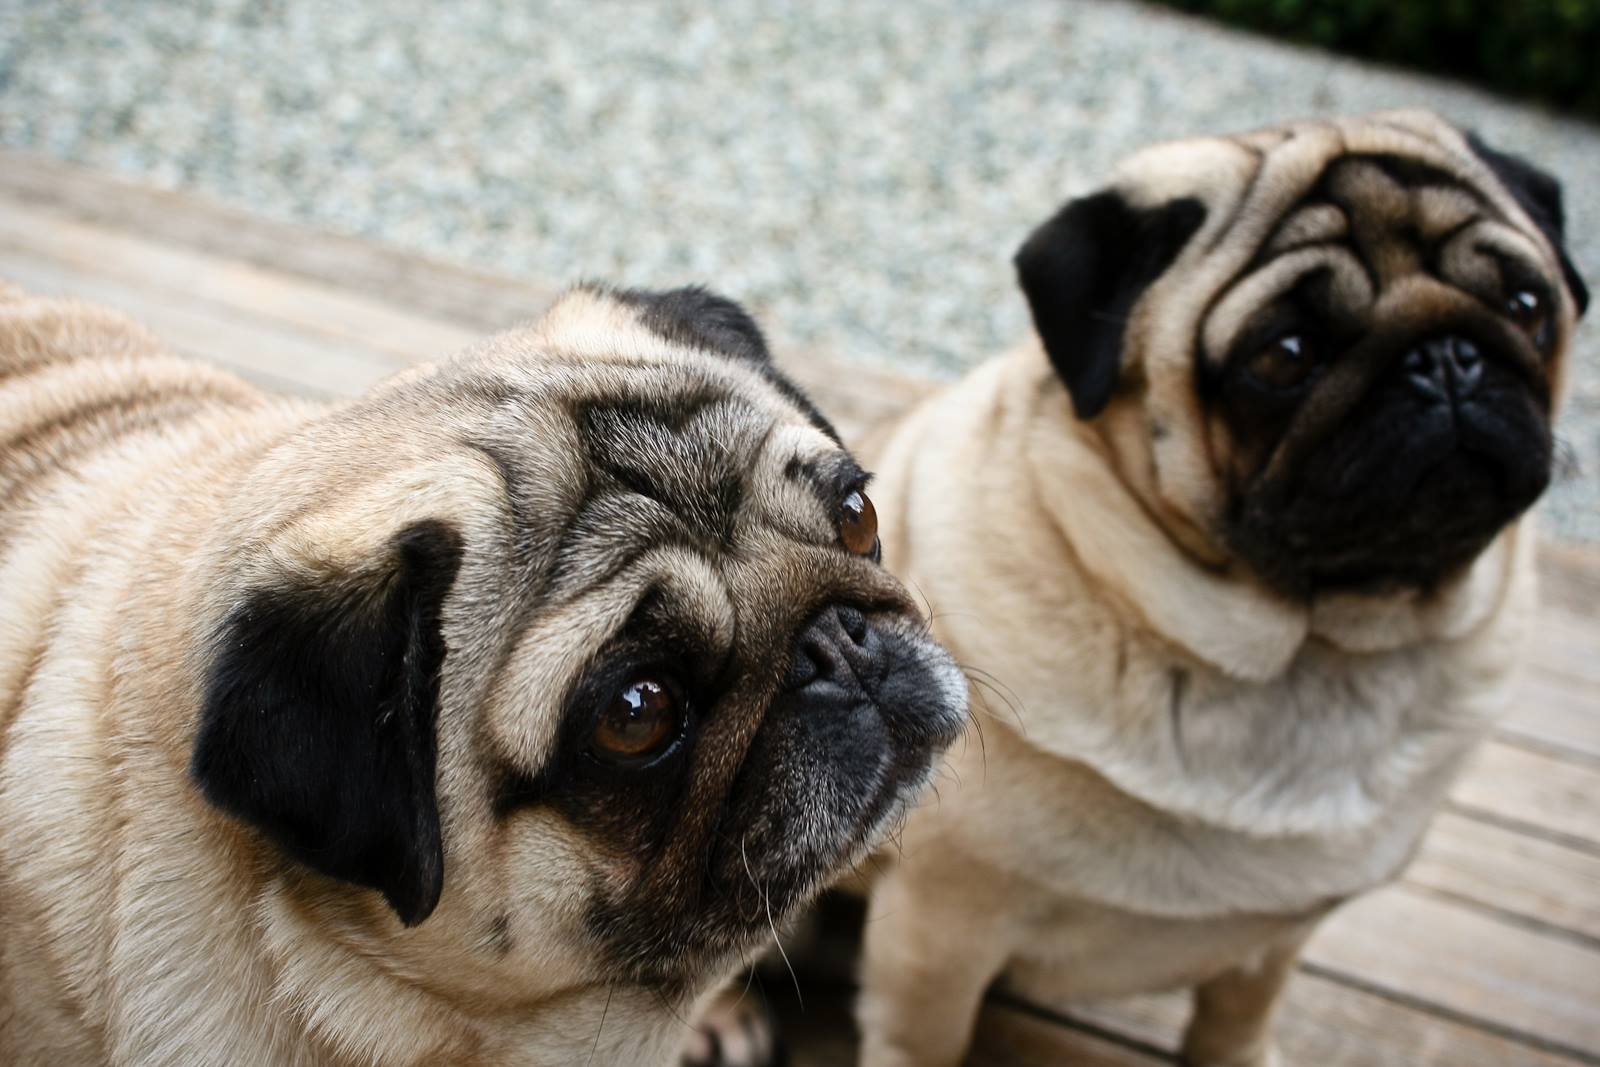 Pug Club Of Canada Committed To The Betterment Of The Pug Dog